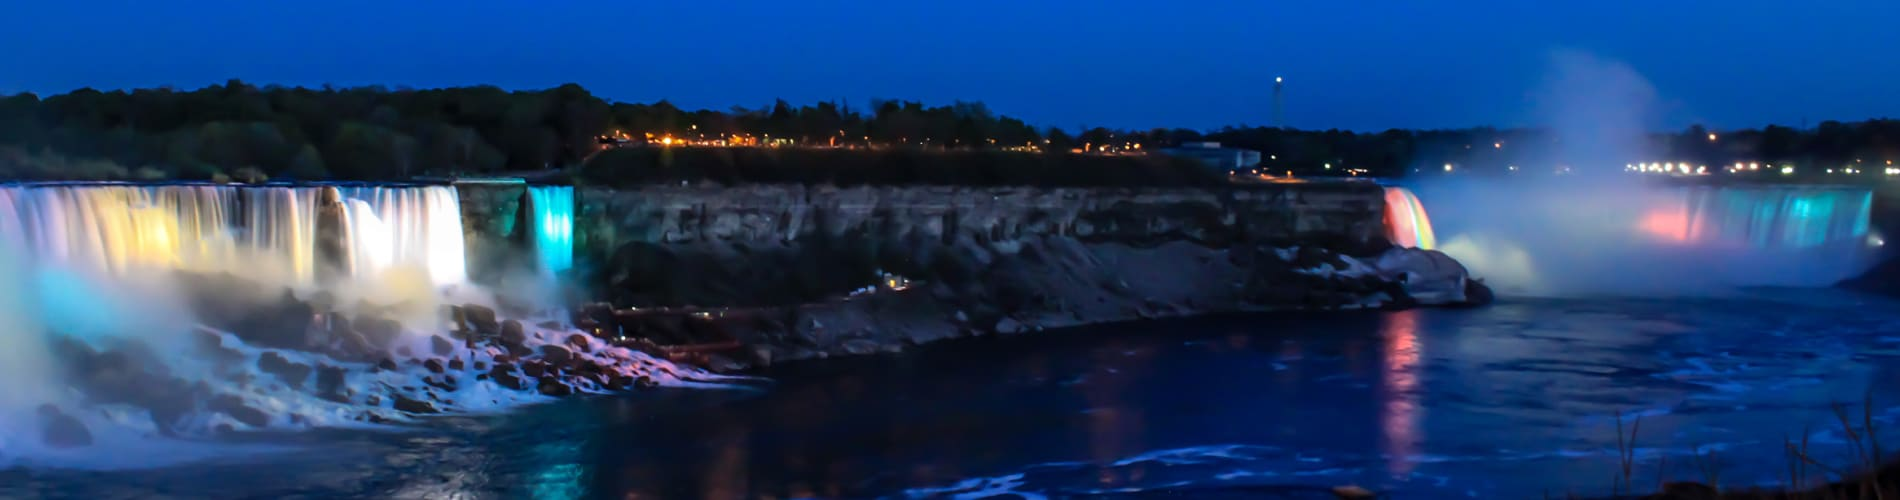 Niagara Falls Night Landscape